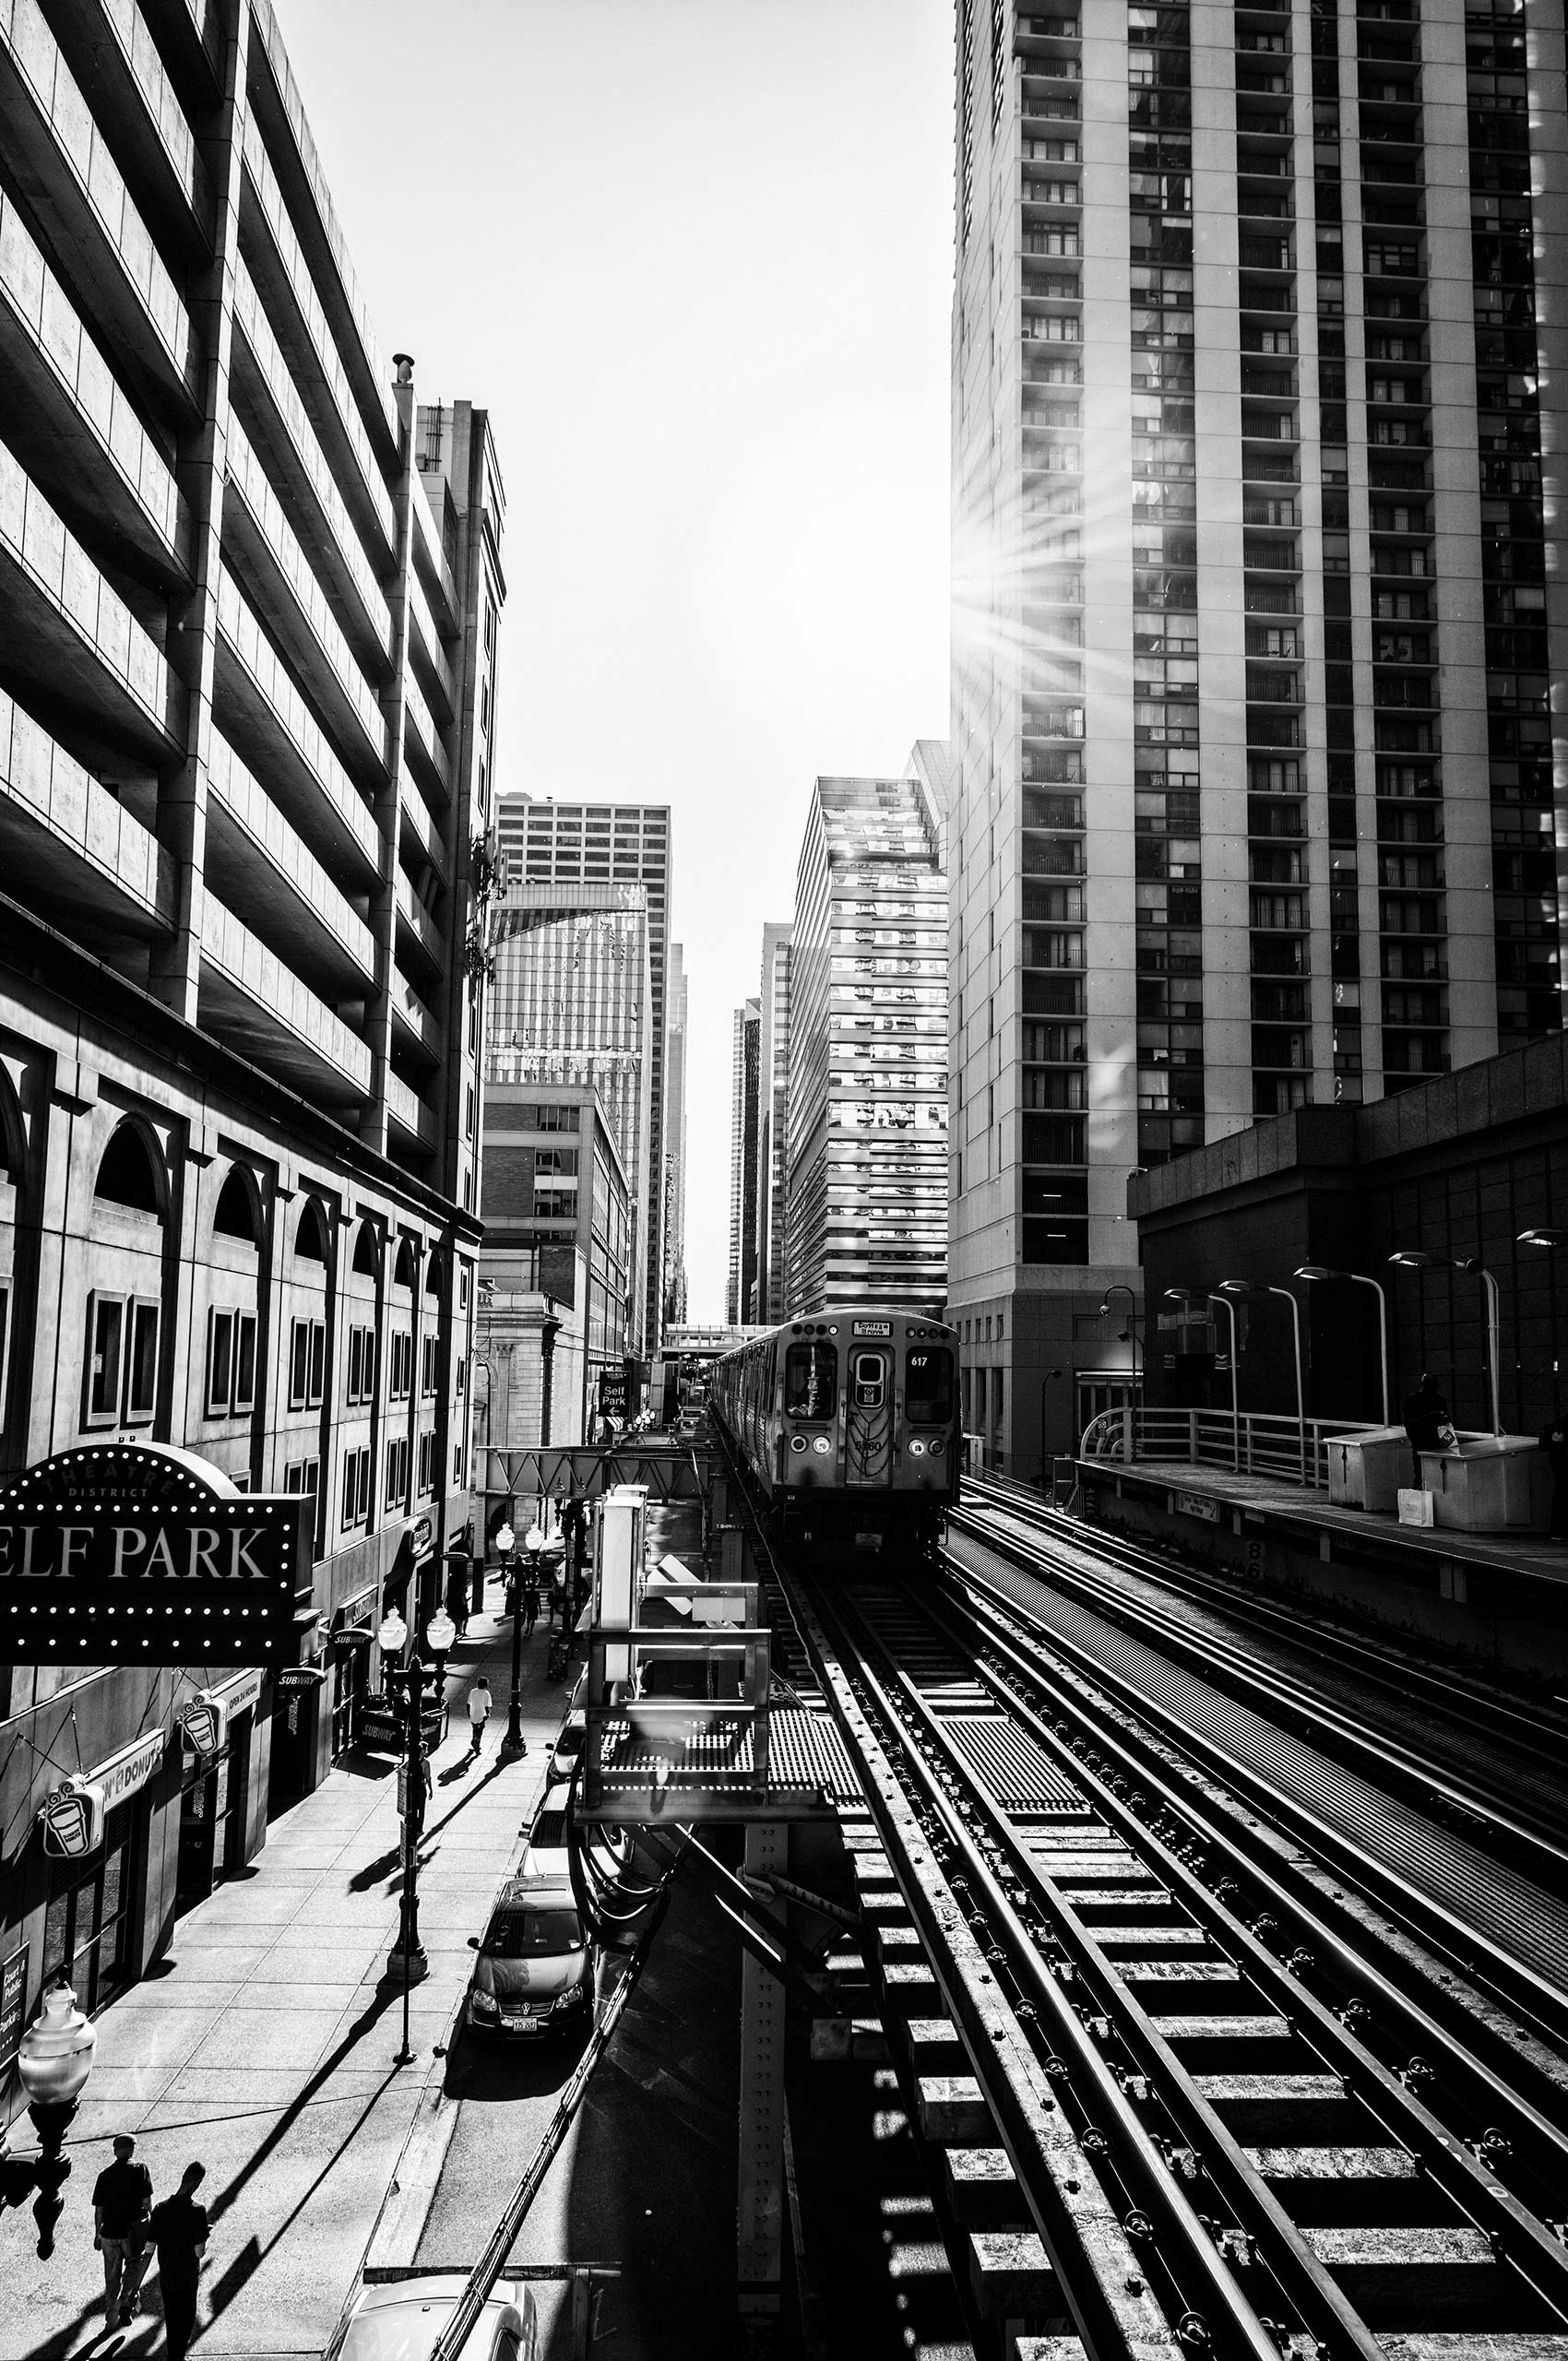 Subway-Buildings-Abovegrounbd-Chicago-HenrikOlundPhotography.jpg